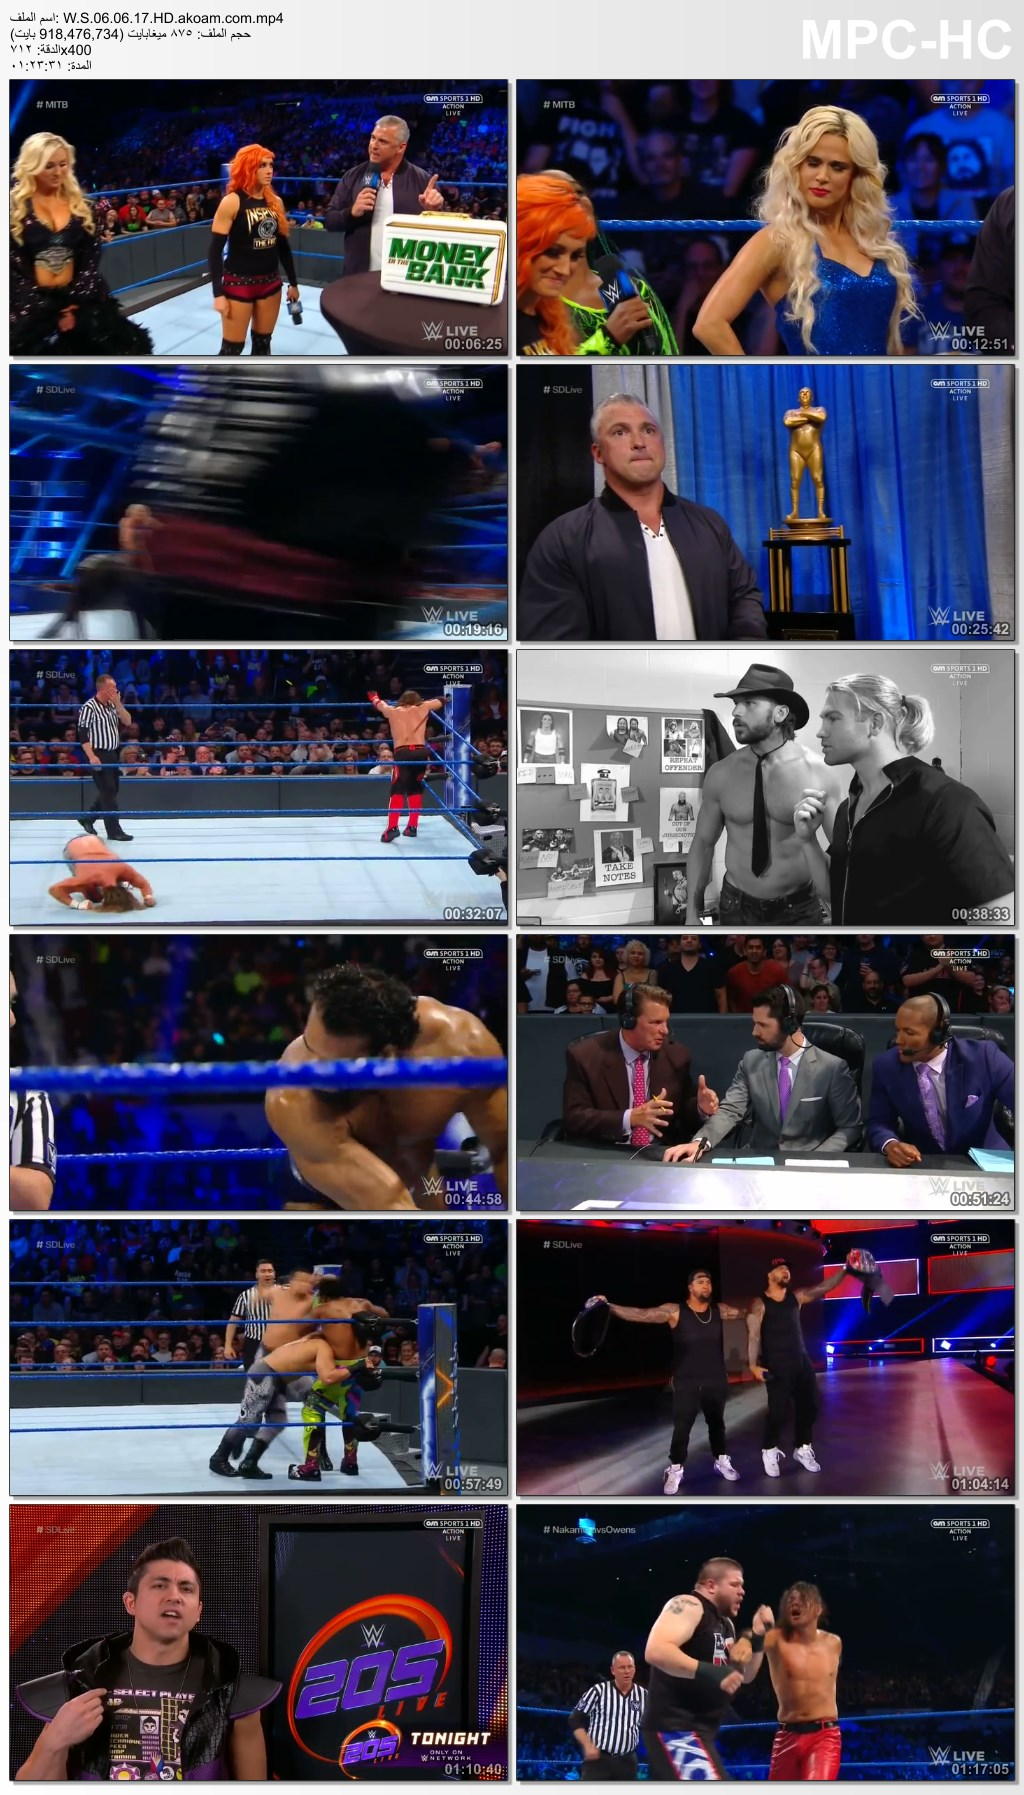 WWE Smackdown 2017,WWE,Smackdown